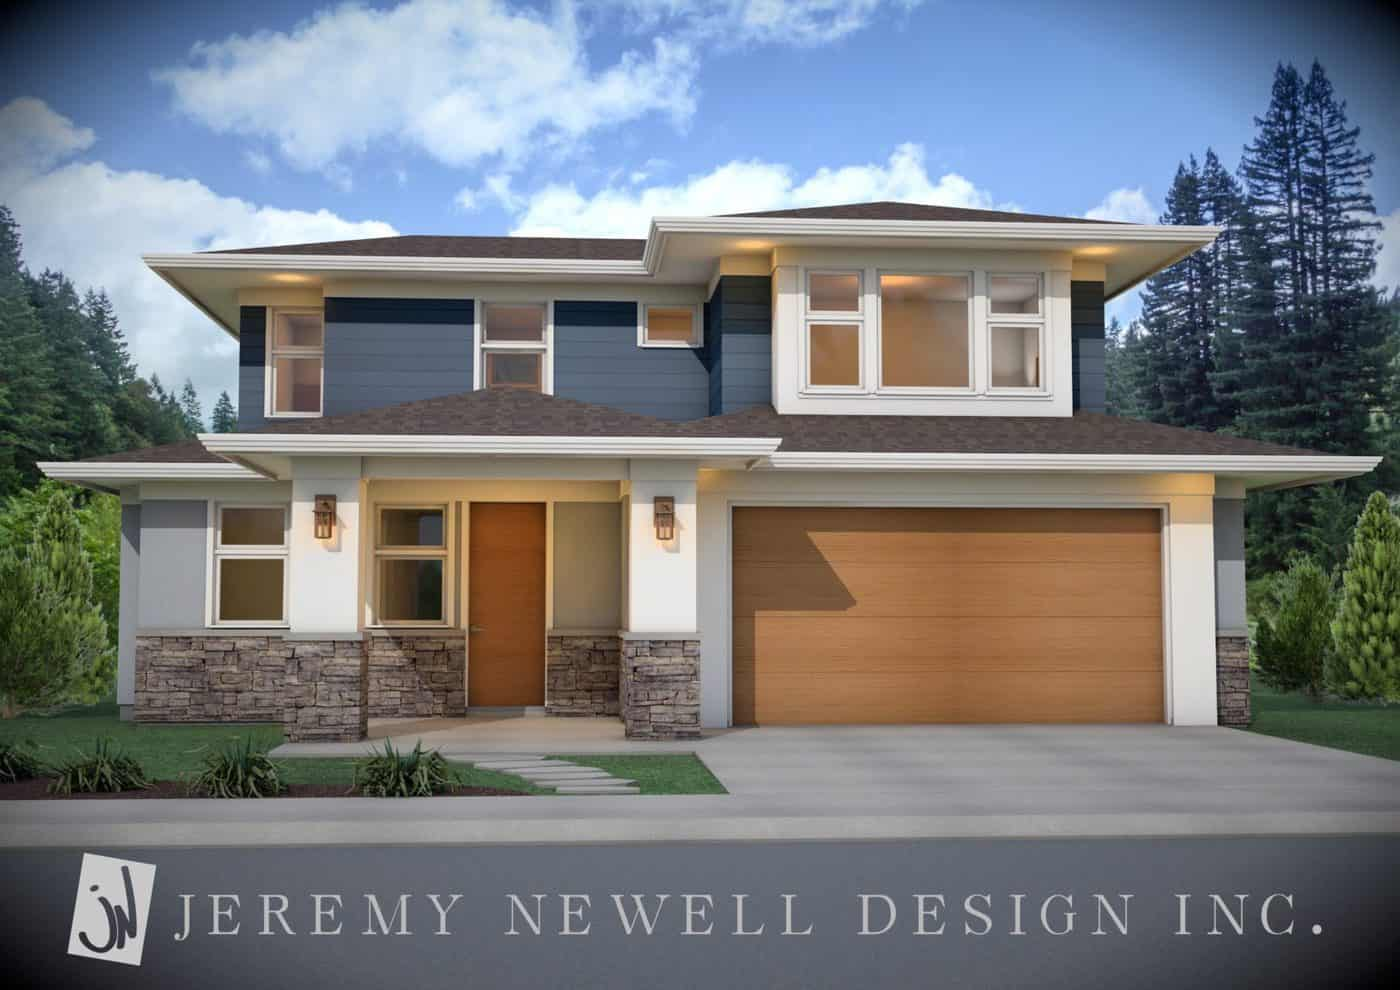 Okanagan modern 1 1 2 storey home by jeremy newell 5 for Estate home designs